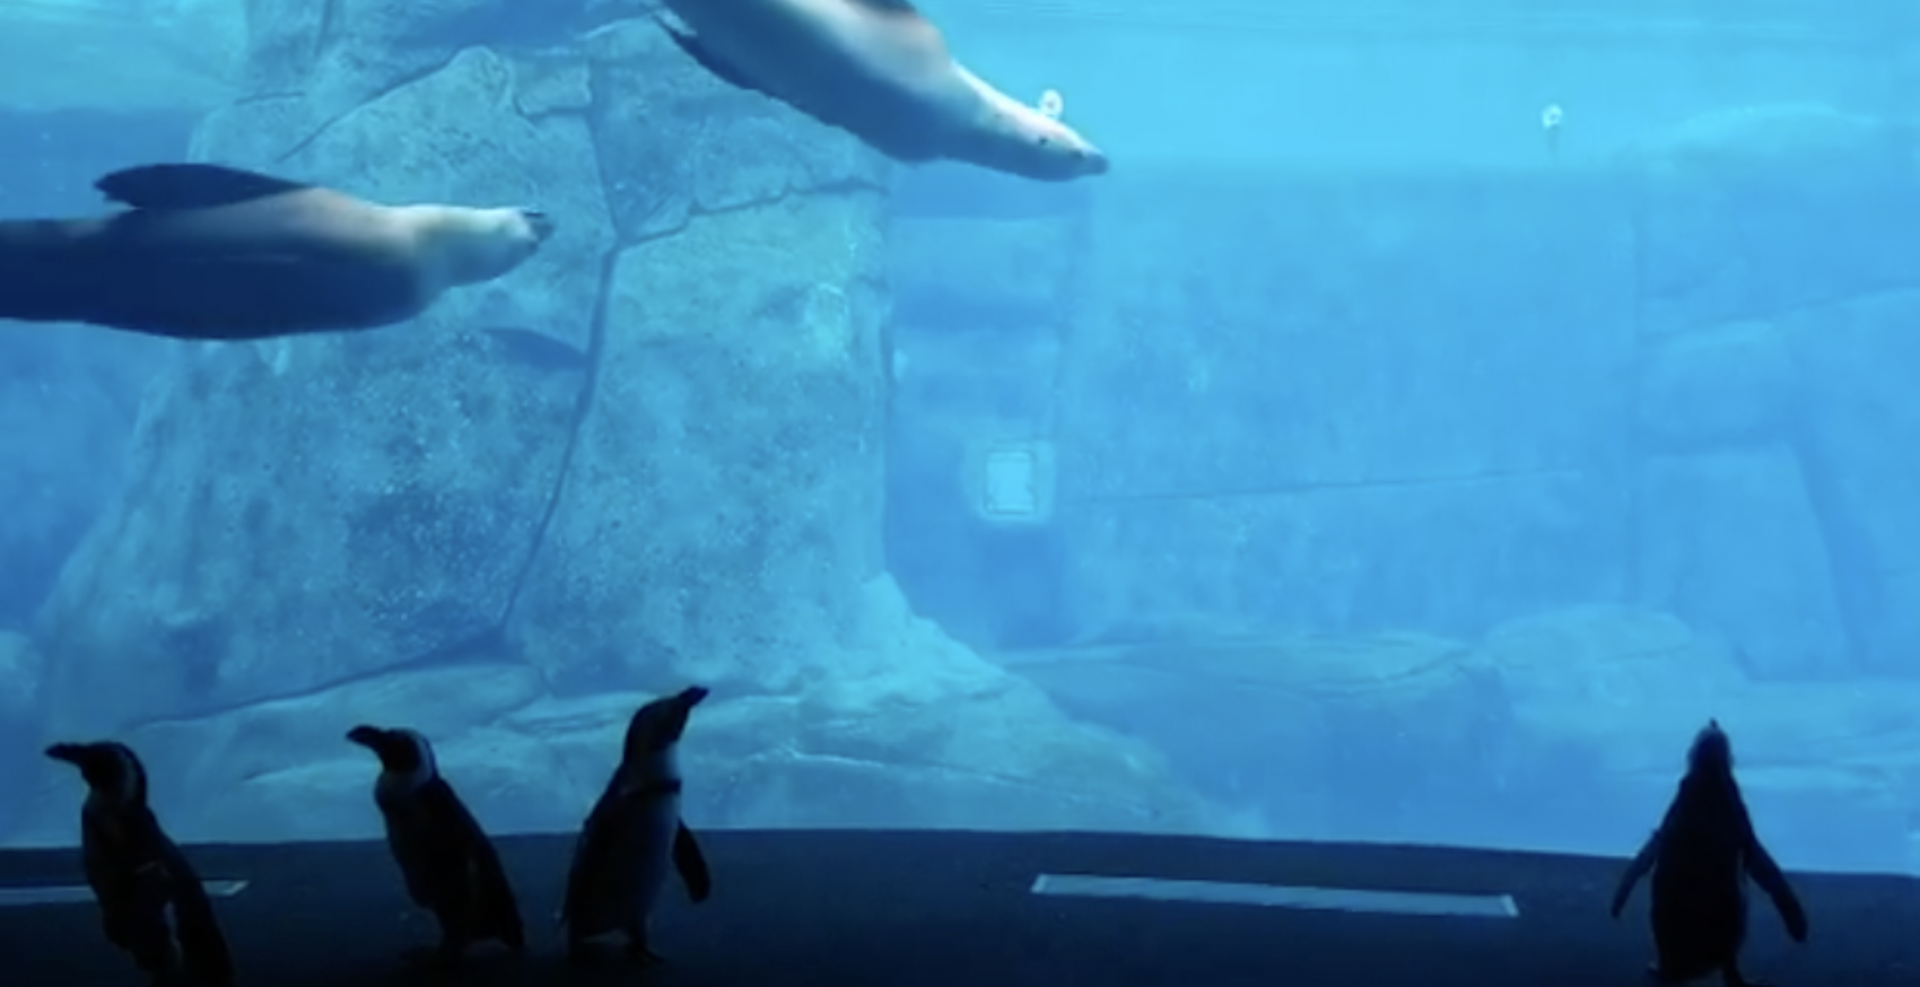 Watch adorable penguins explore the Vancouver Aquarium (VIDEOS)